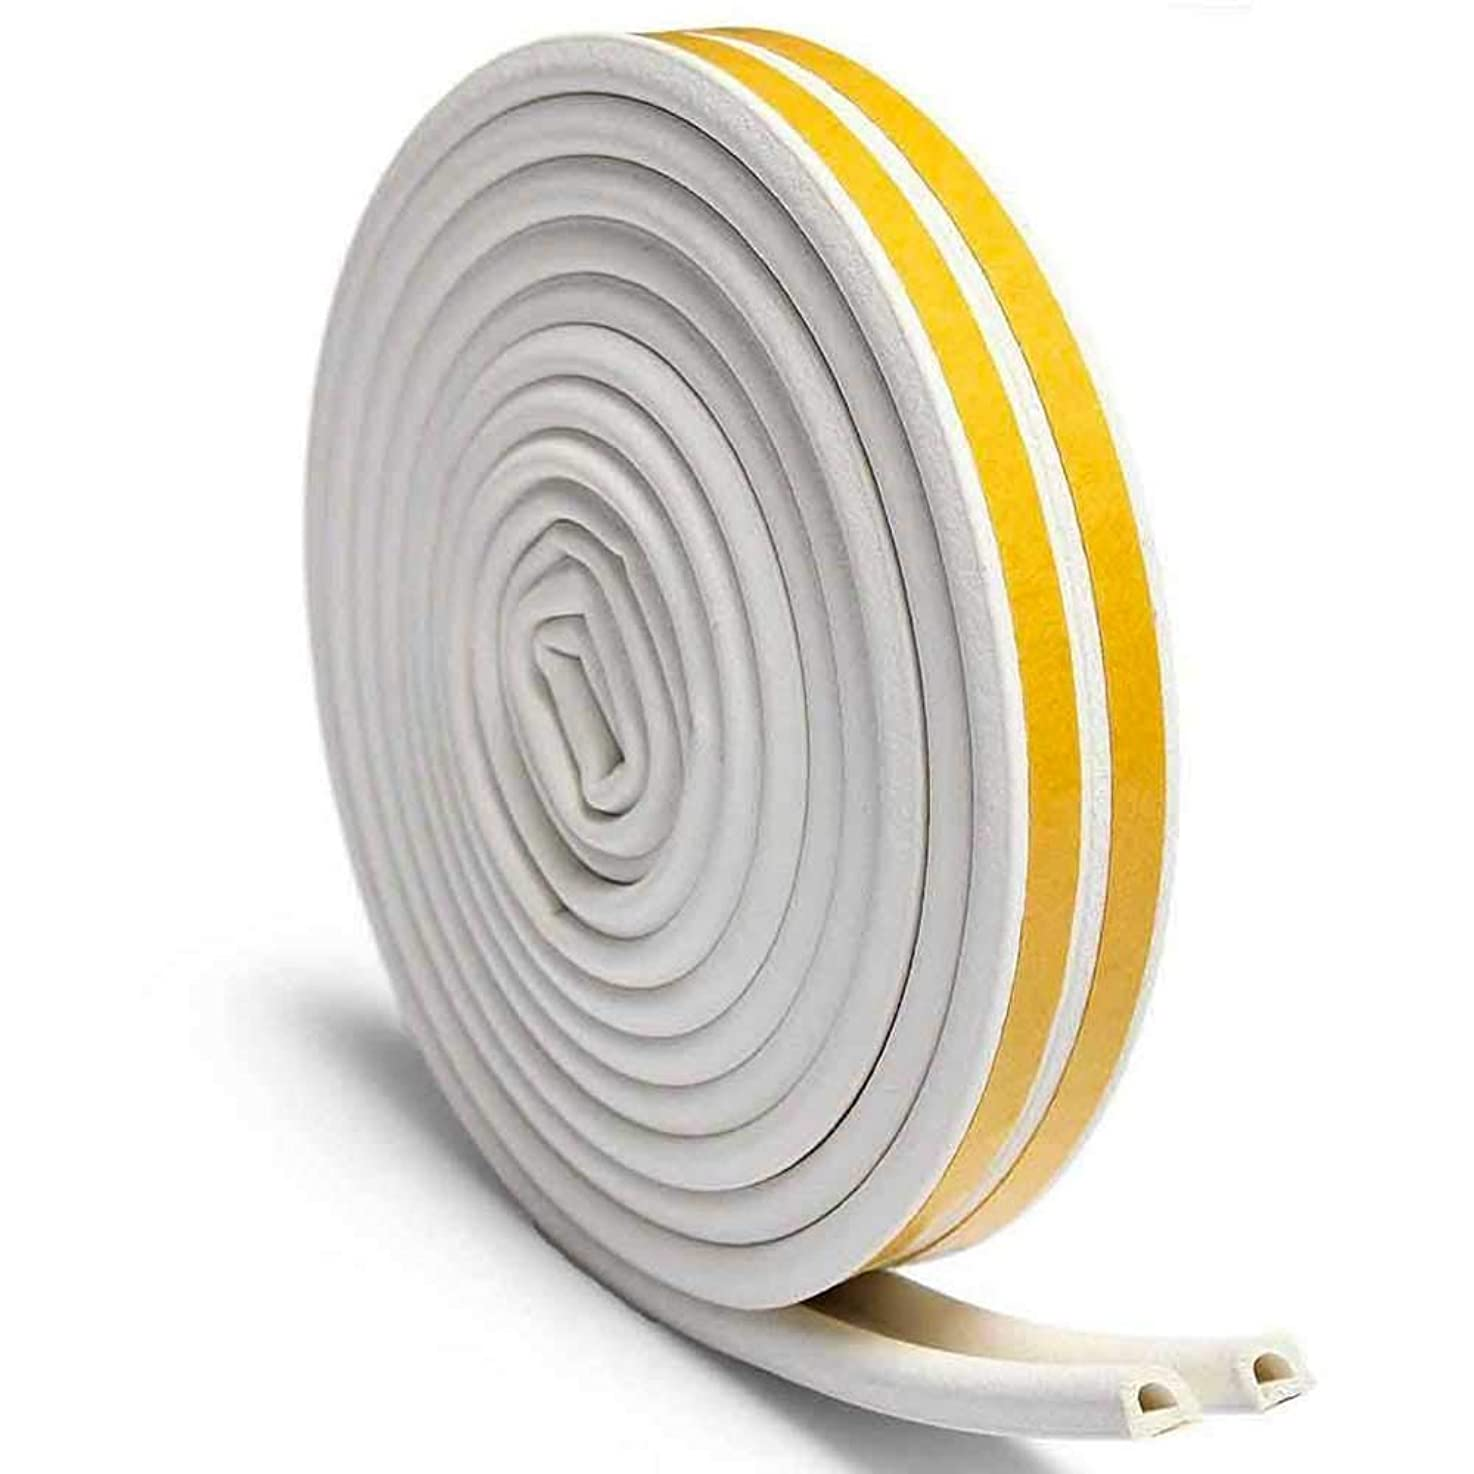 Door Weather Stripping for Doors and Windows – 23 FEET – Self-Adhesive Double Seal Soundproof Weather Stripping – D-Shape Strip Tape – White